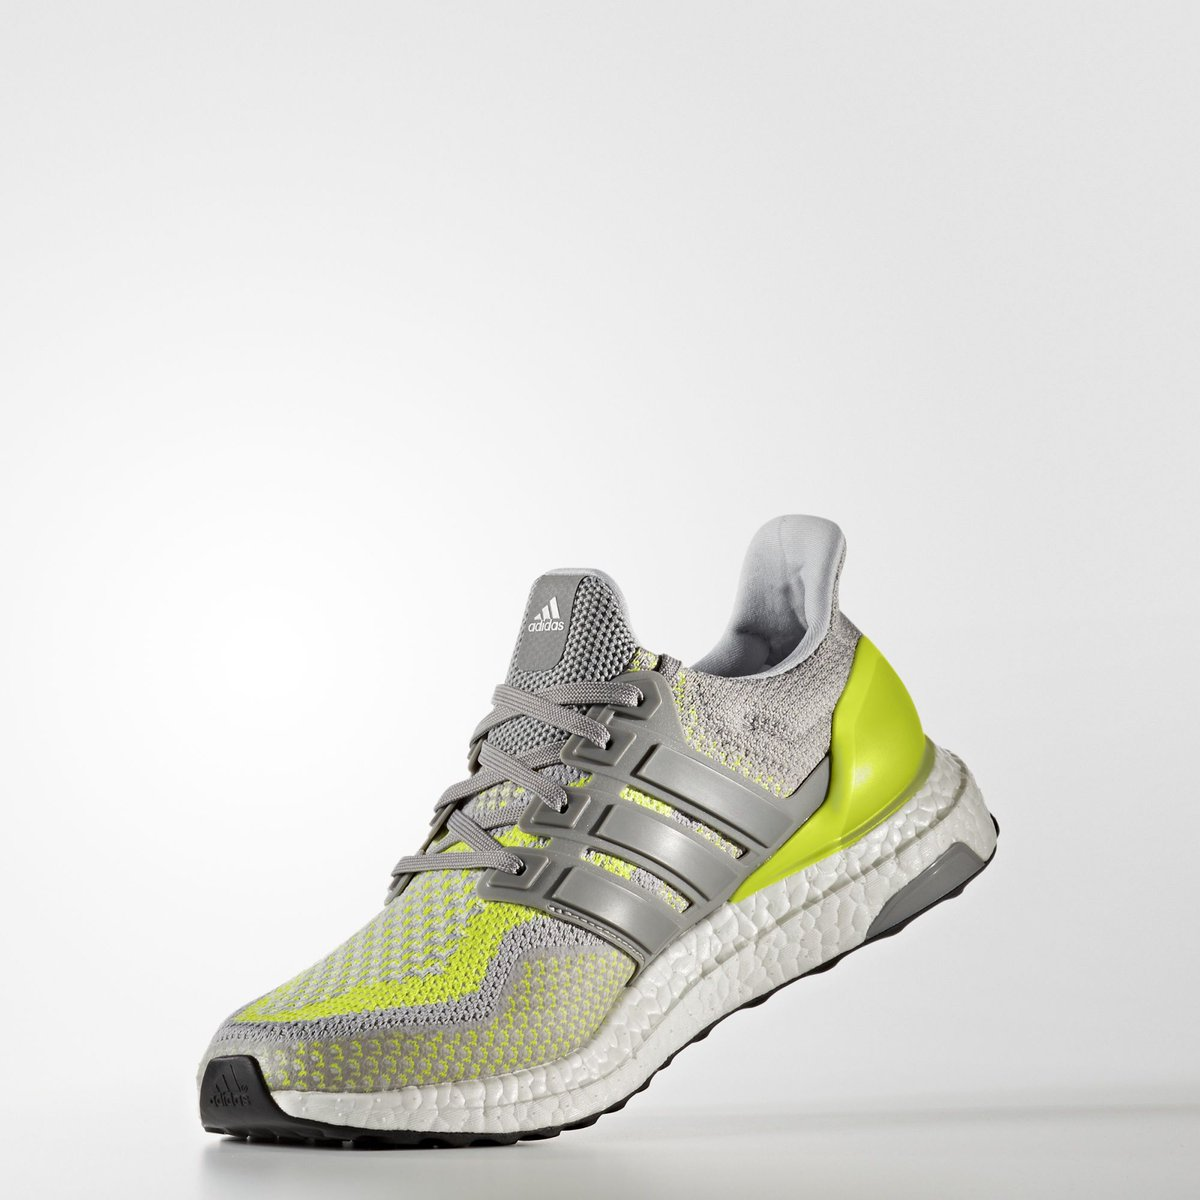 adidas Ultra Boost 2.0 ATR Glow in the Dark 2019 Restock